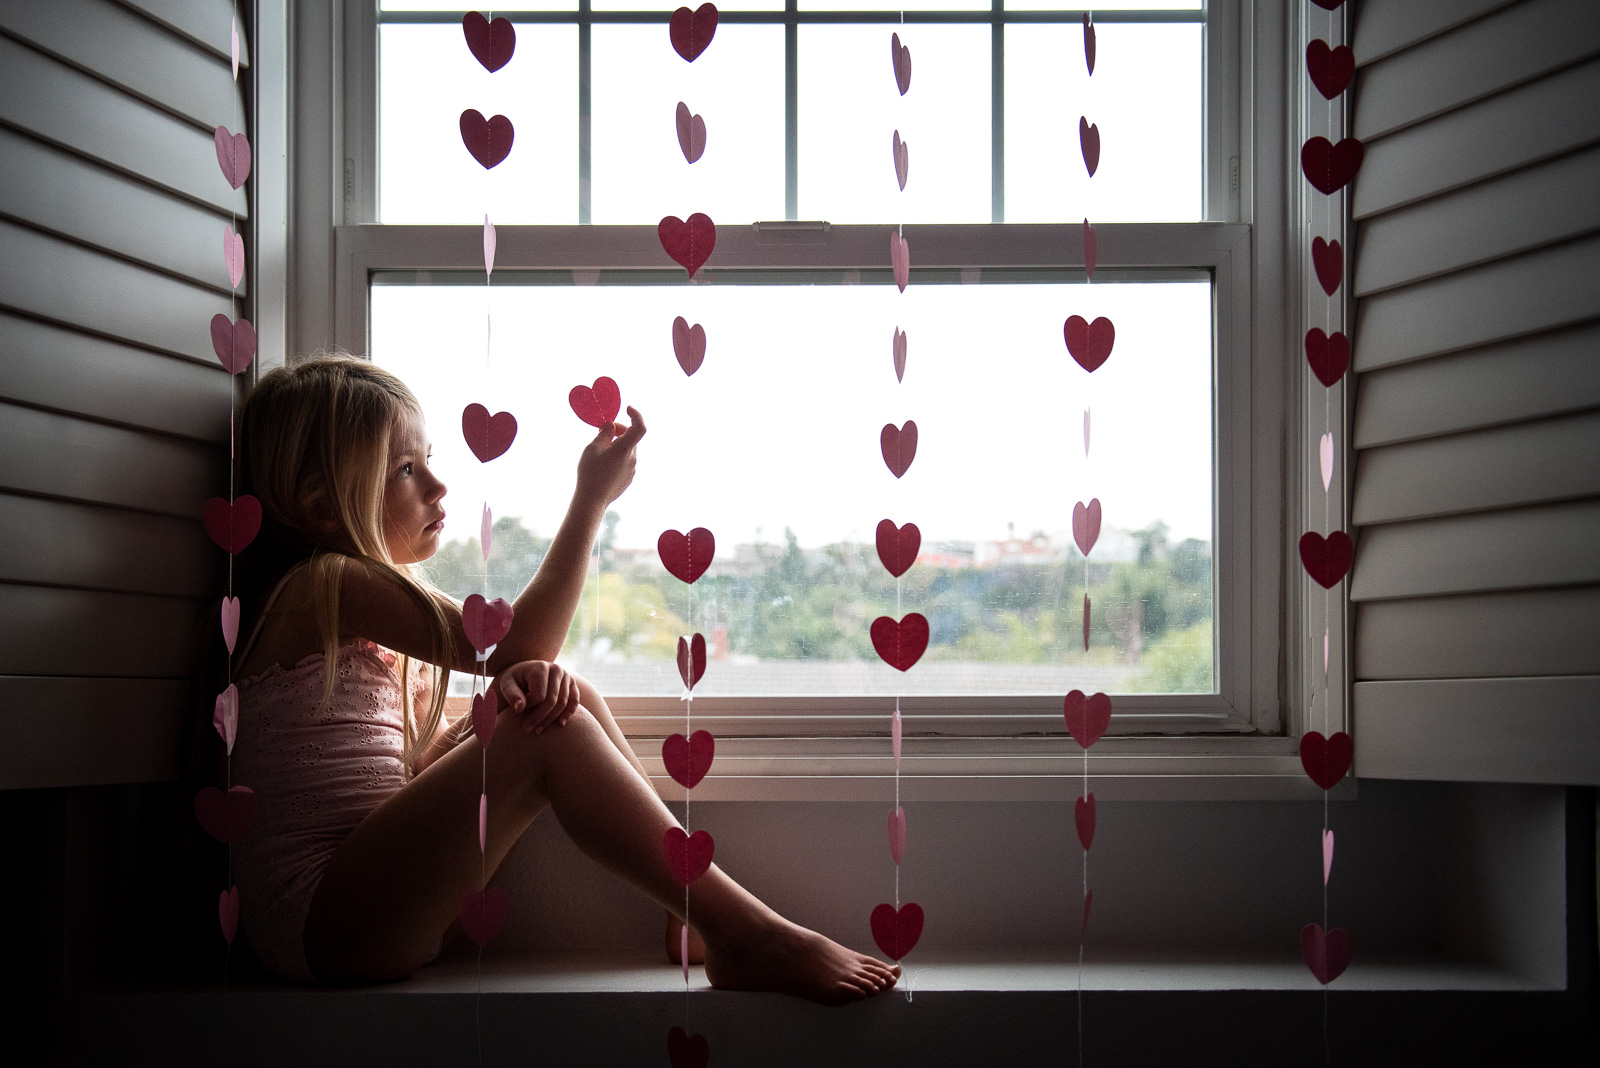 Unexpected Backdrops Window decorated with heart garland karlee hooper